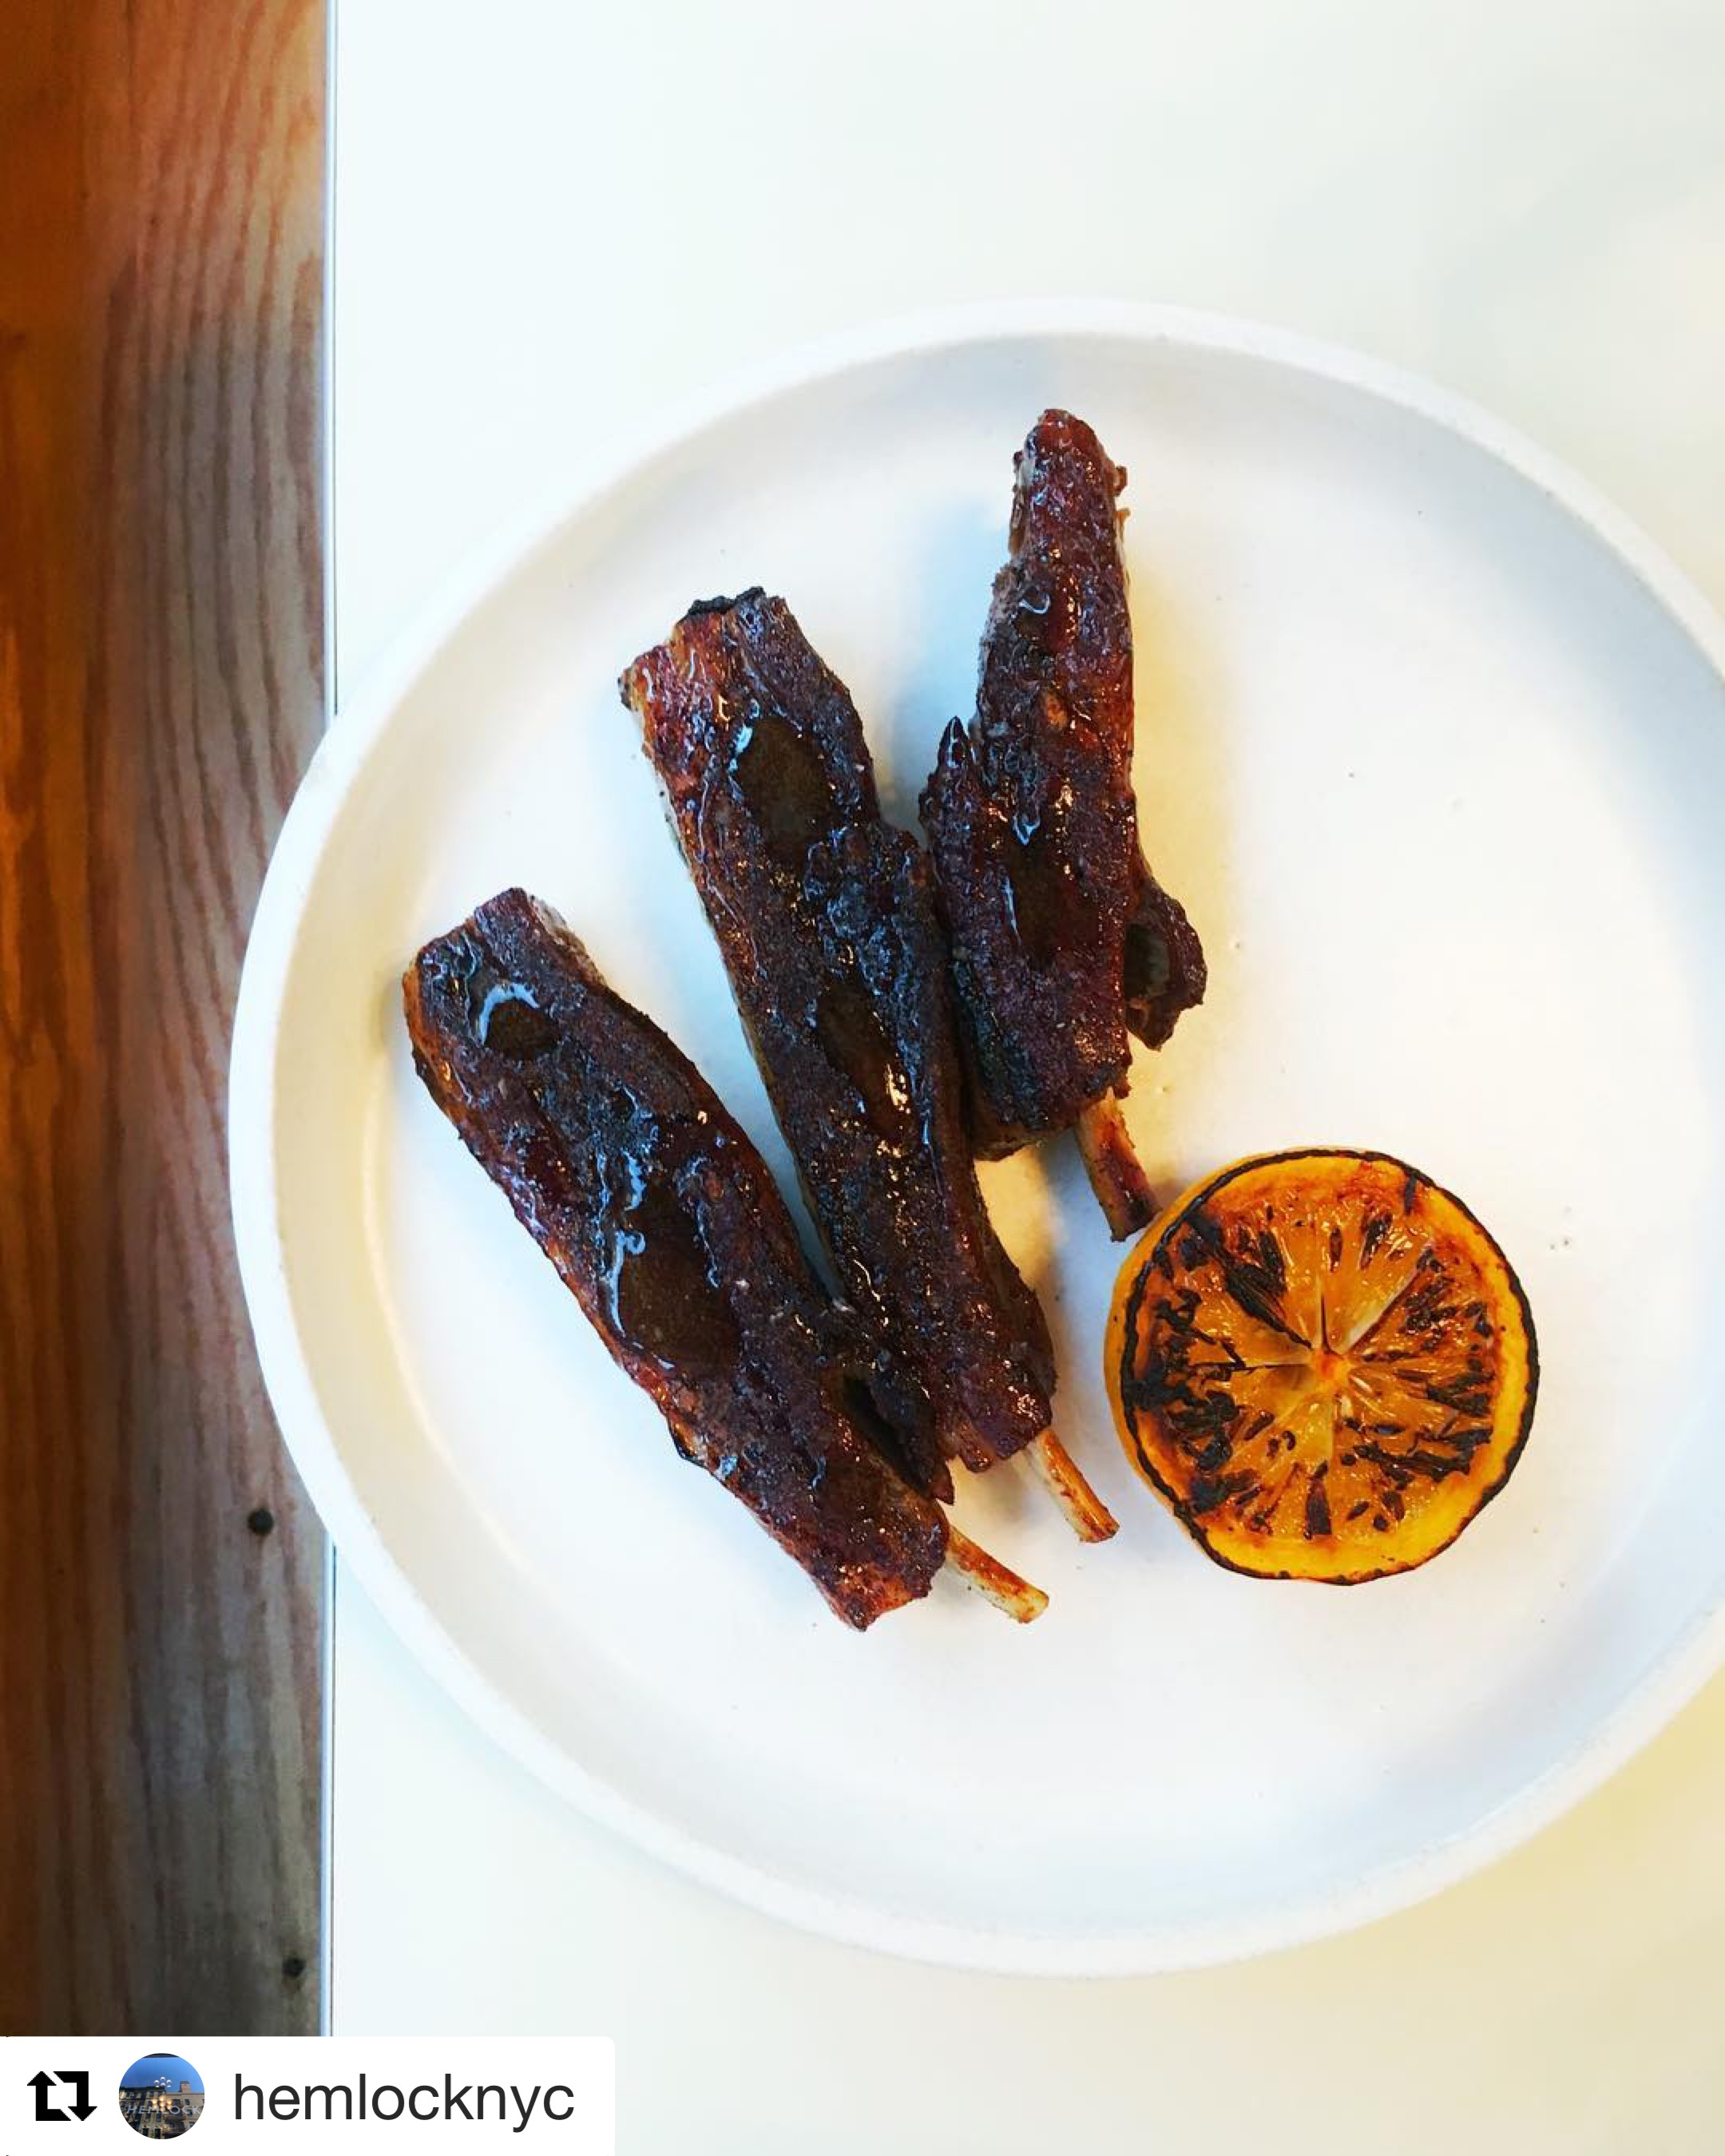 Lamb Ribs glazed in coffee, black cardamom and Meyer lemon